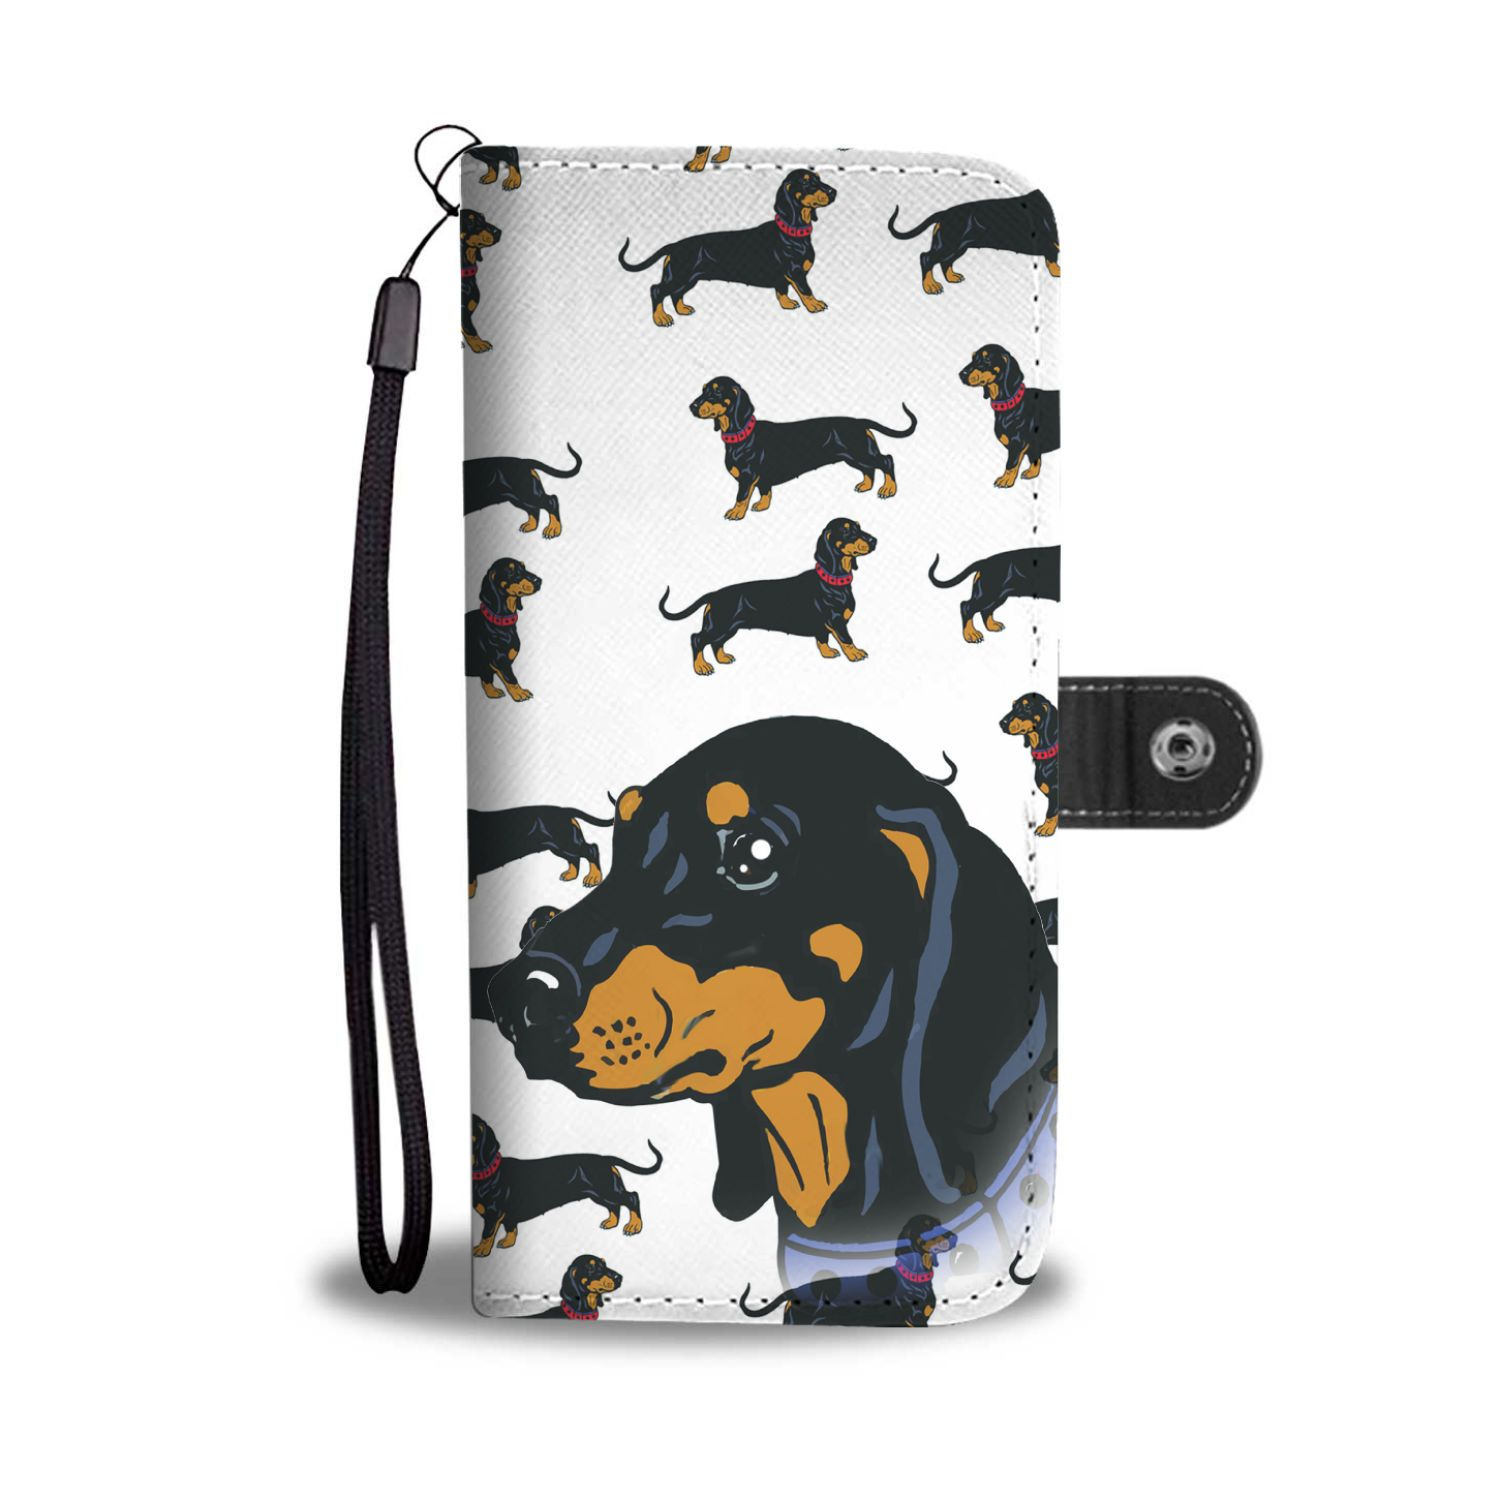 Shop Dachshund Apparel Backpack Bags Bed Set Bed